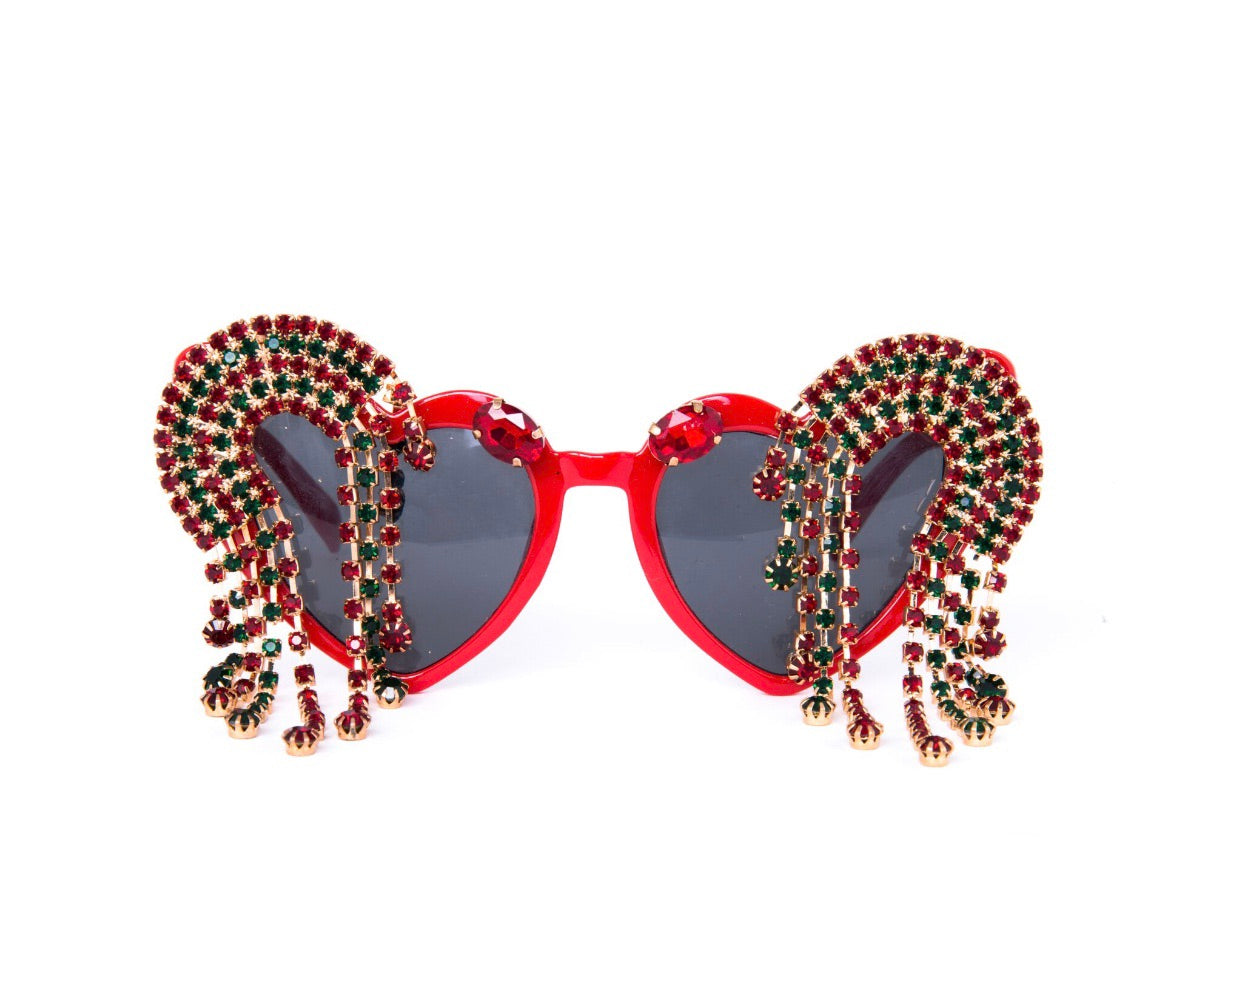 Crystals Heart- Couture eyewear